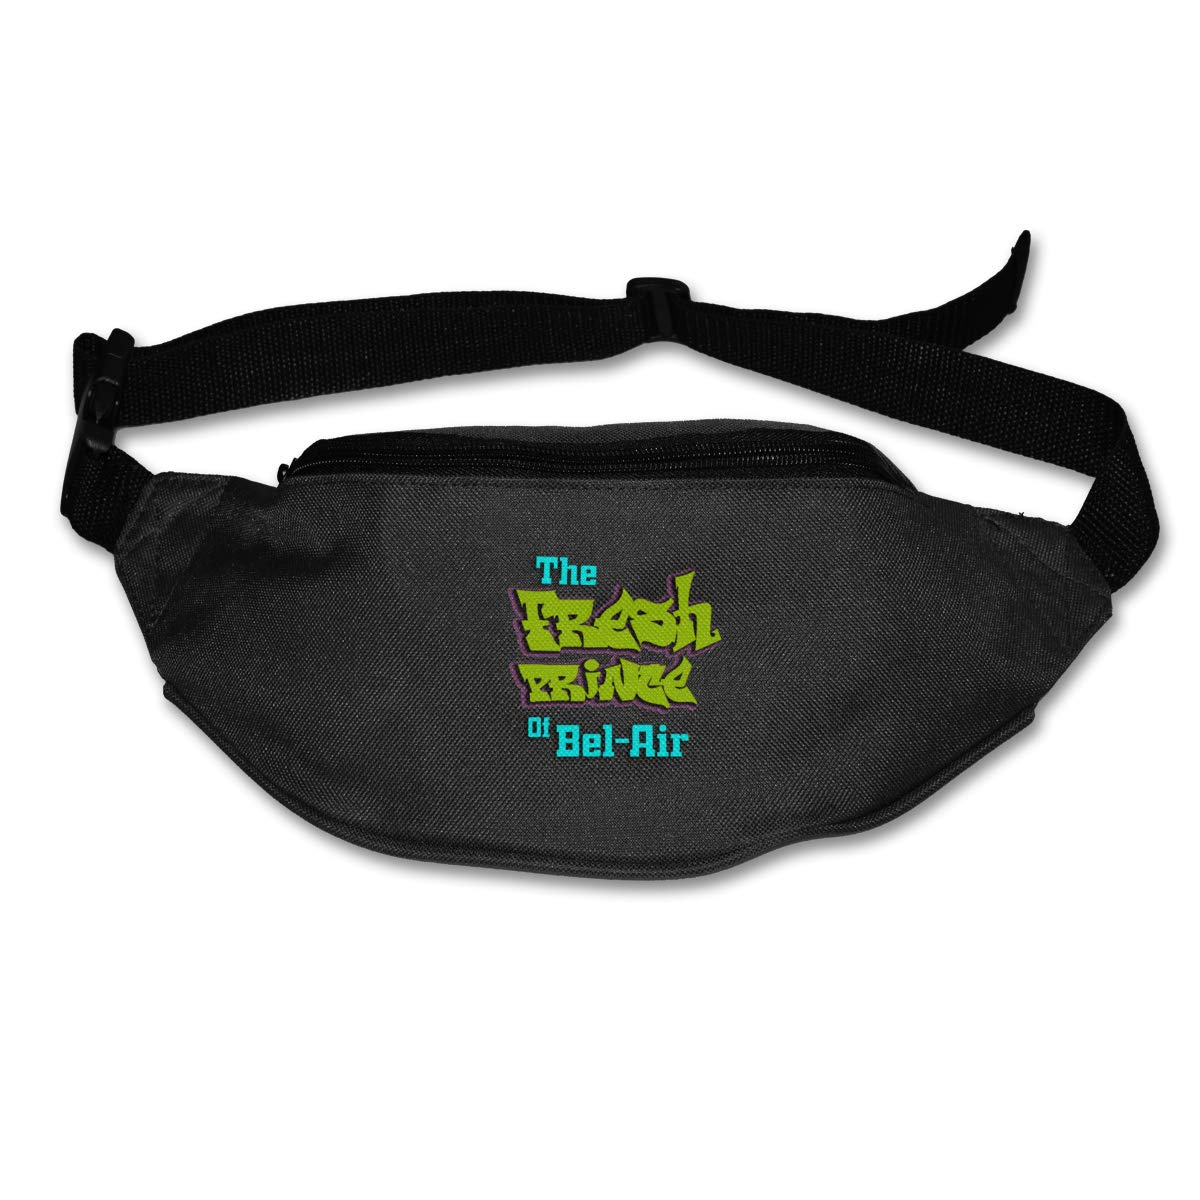 The Fresh Prince Of Bel-Air Sport Waist Pack Fanny Pack Adjustable For Run